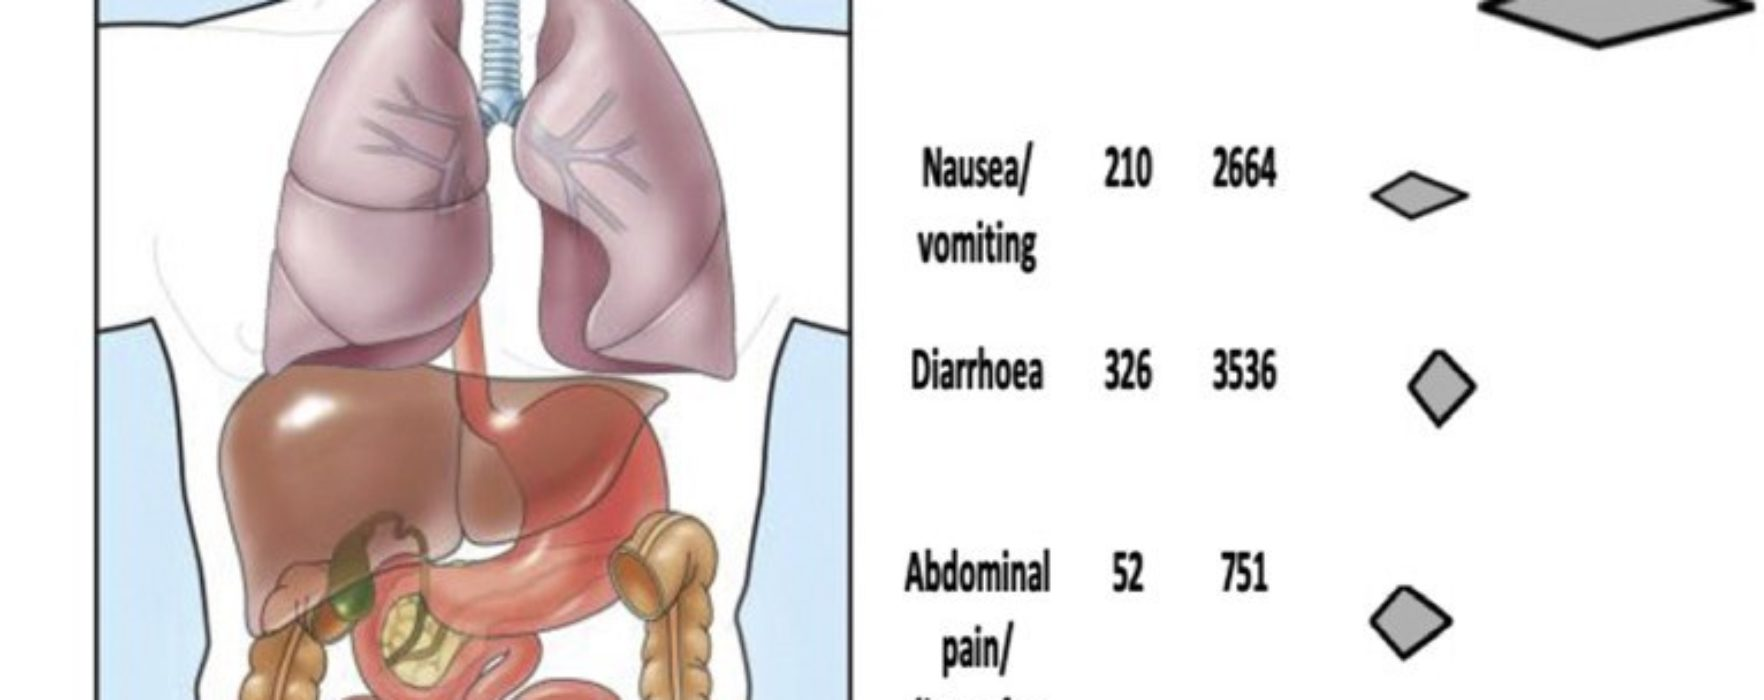 Meta-analysis: a Comprehensive Look at Gastrointestinal Effects of COVID-19